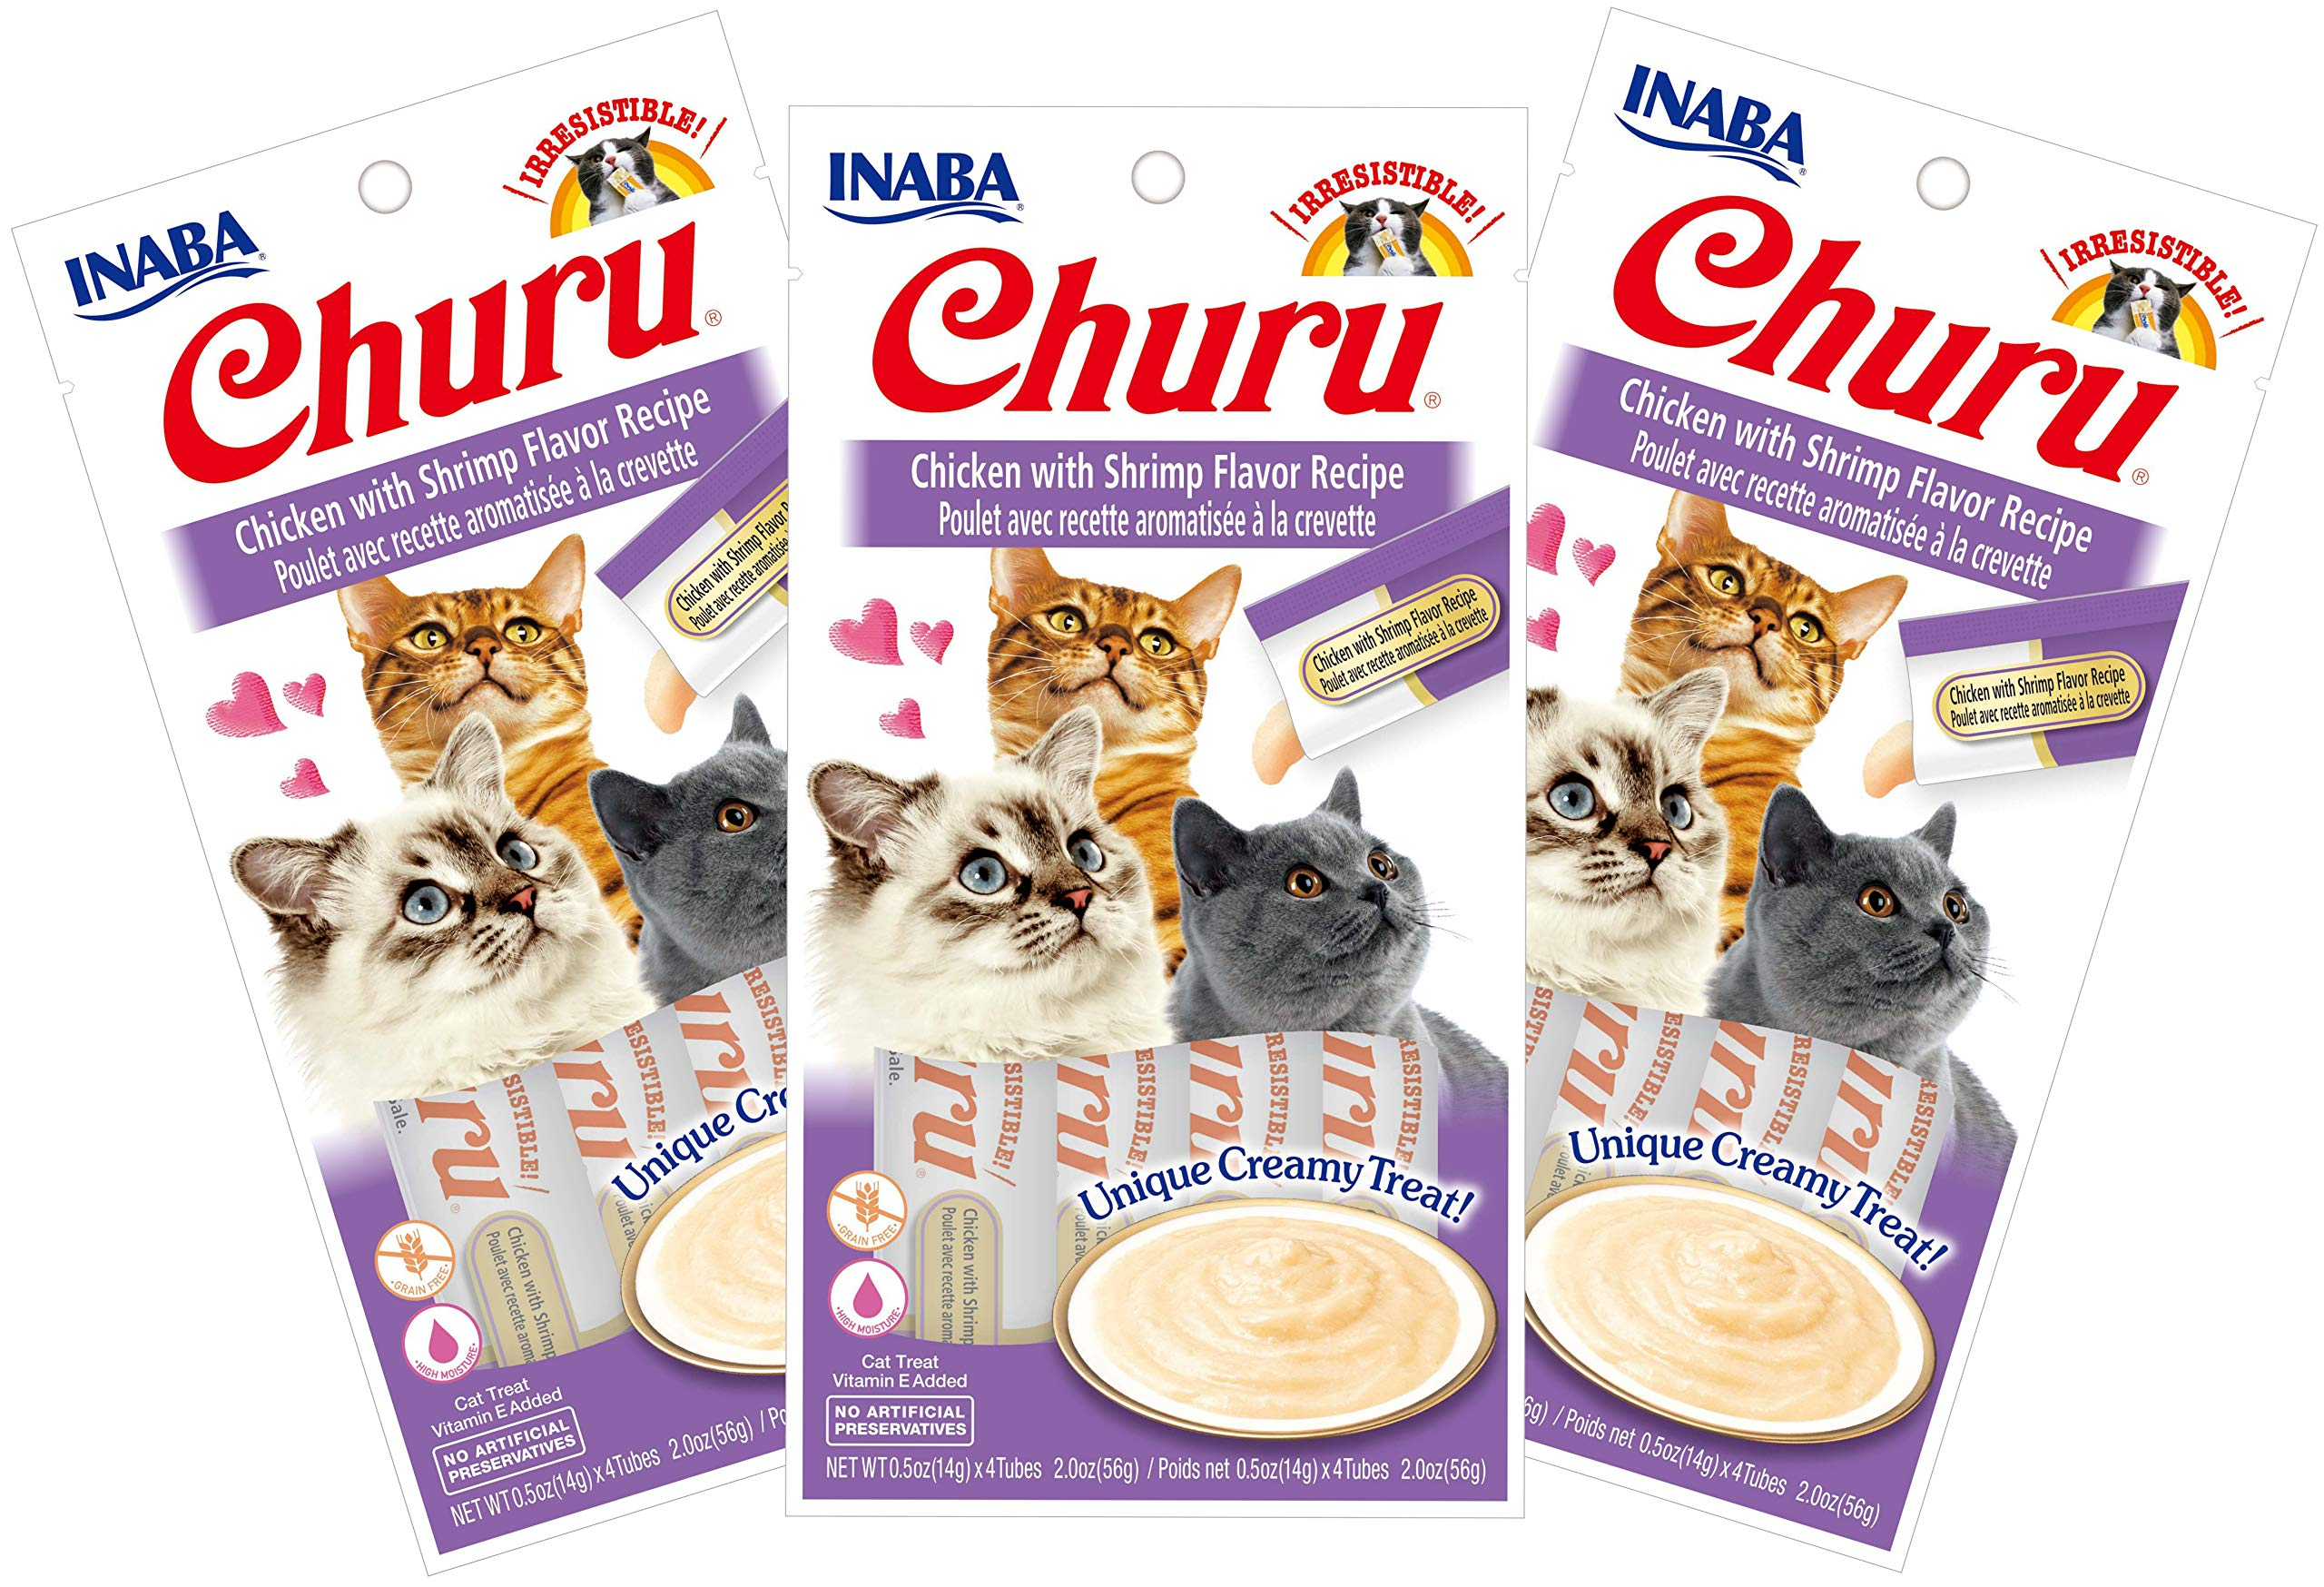 INABA Churu Chicken with Shrimp Flavor Recipe Lickable Purée Natural Cat Treats 12 Tubes